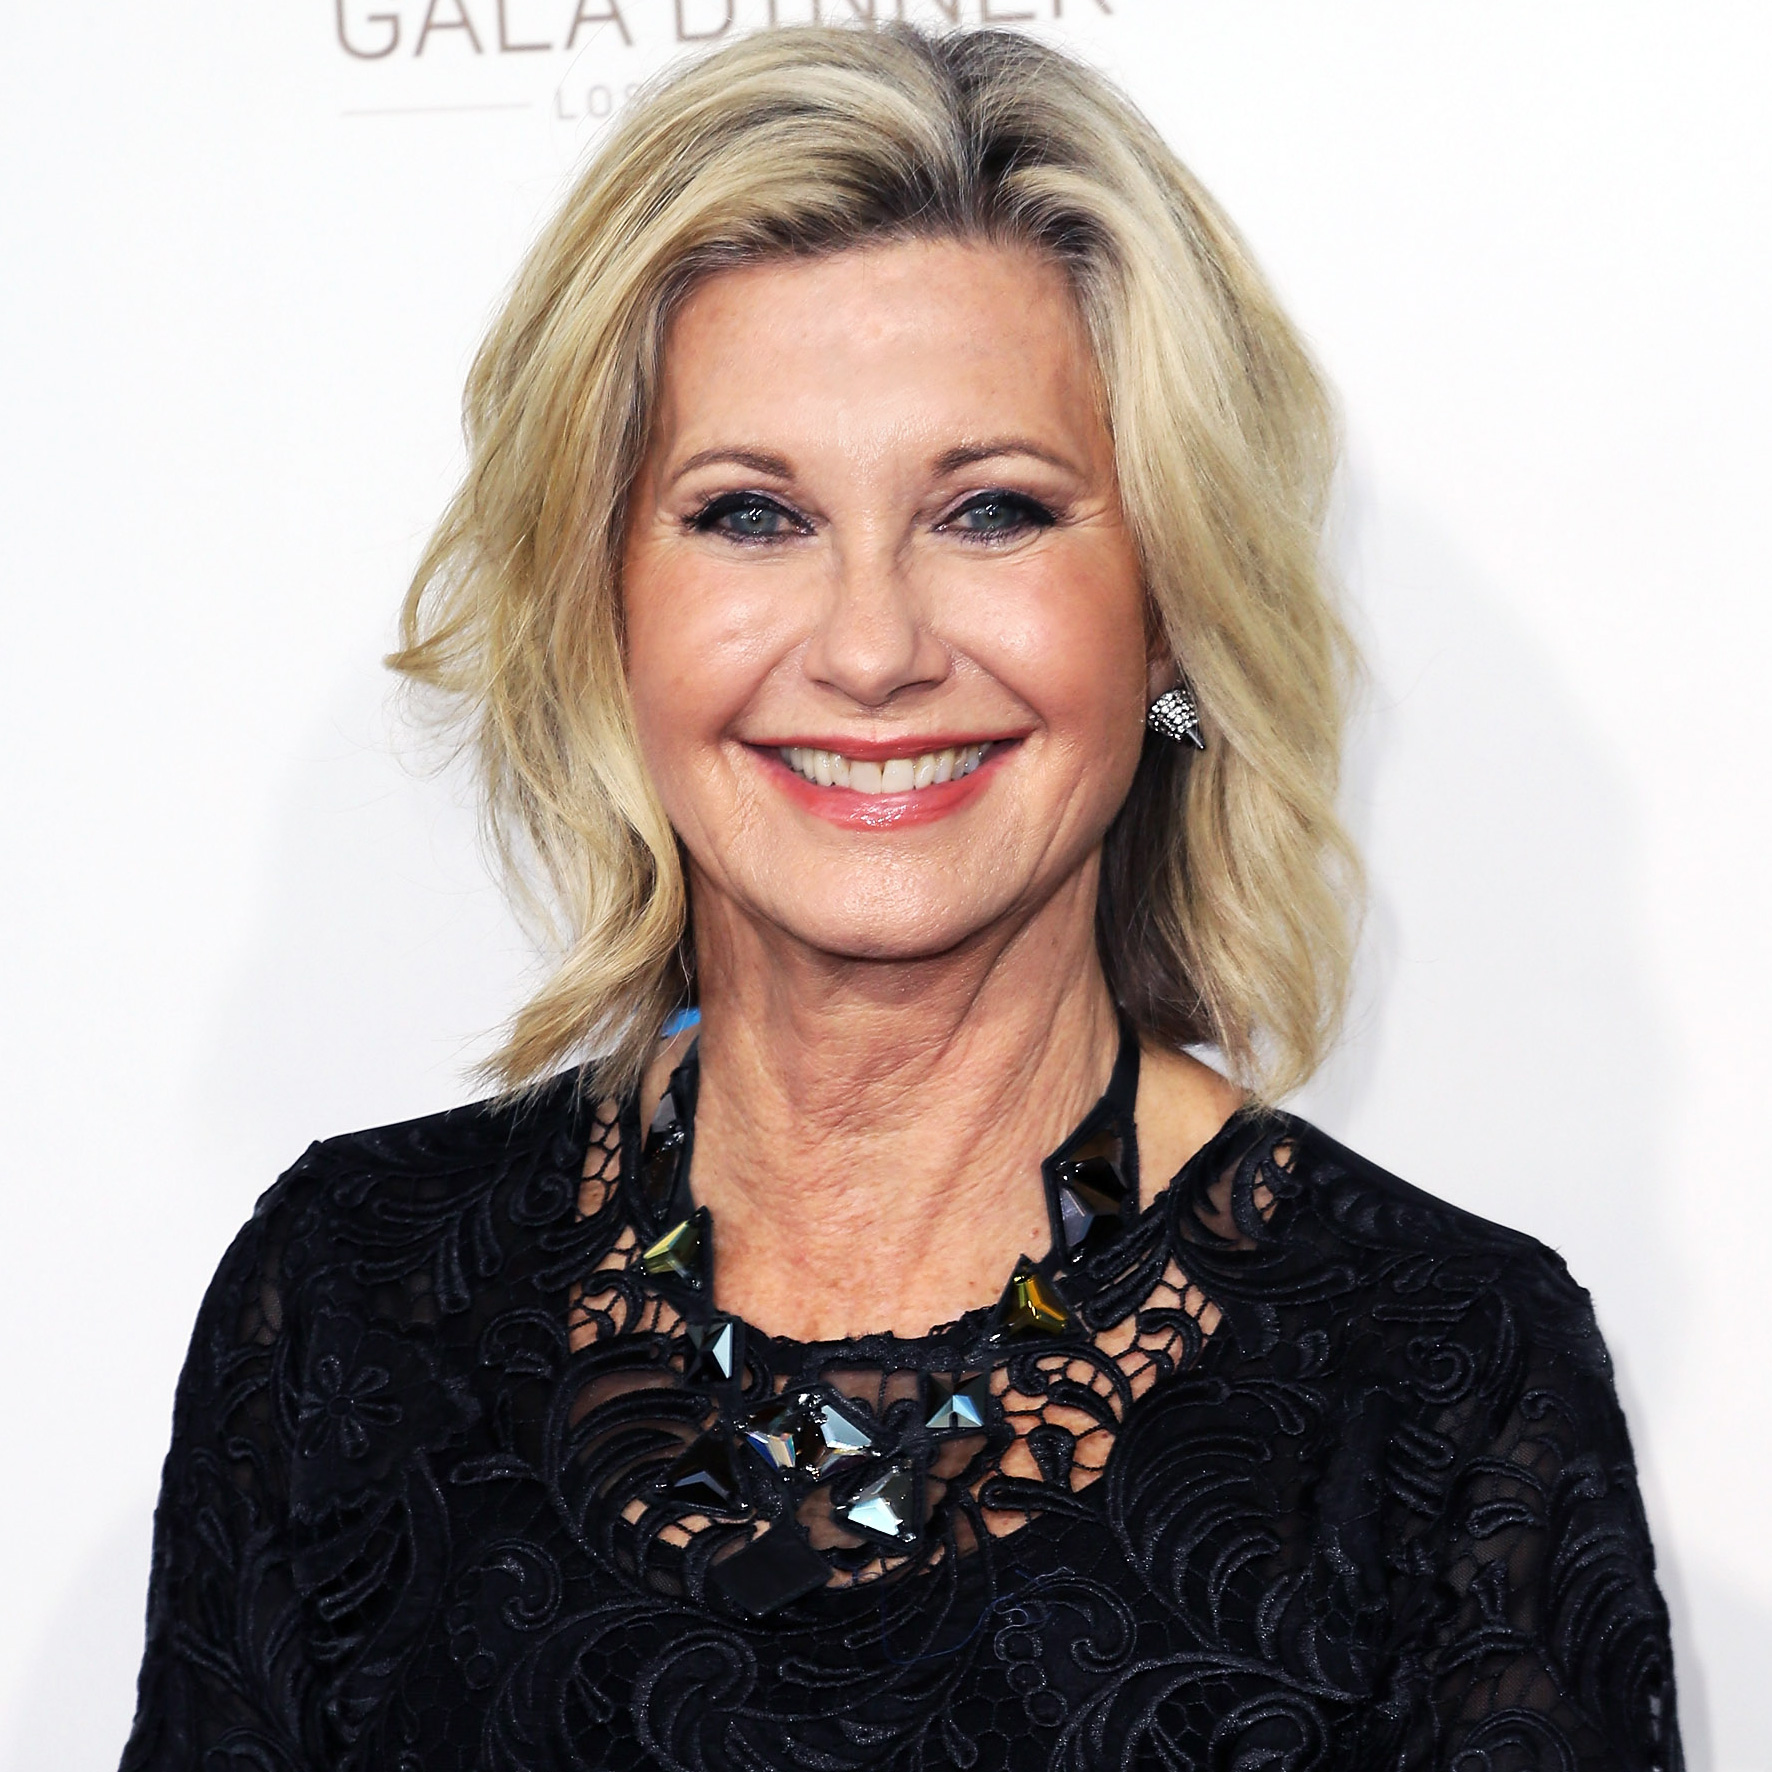 Celebs Who Revealed Health Issues in 2017 - Olivia Newton-John